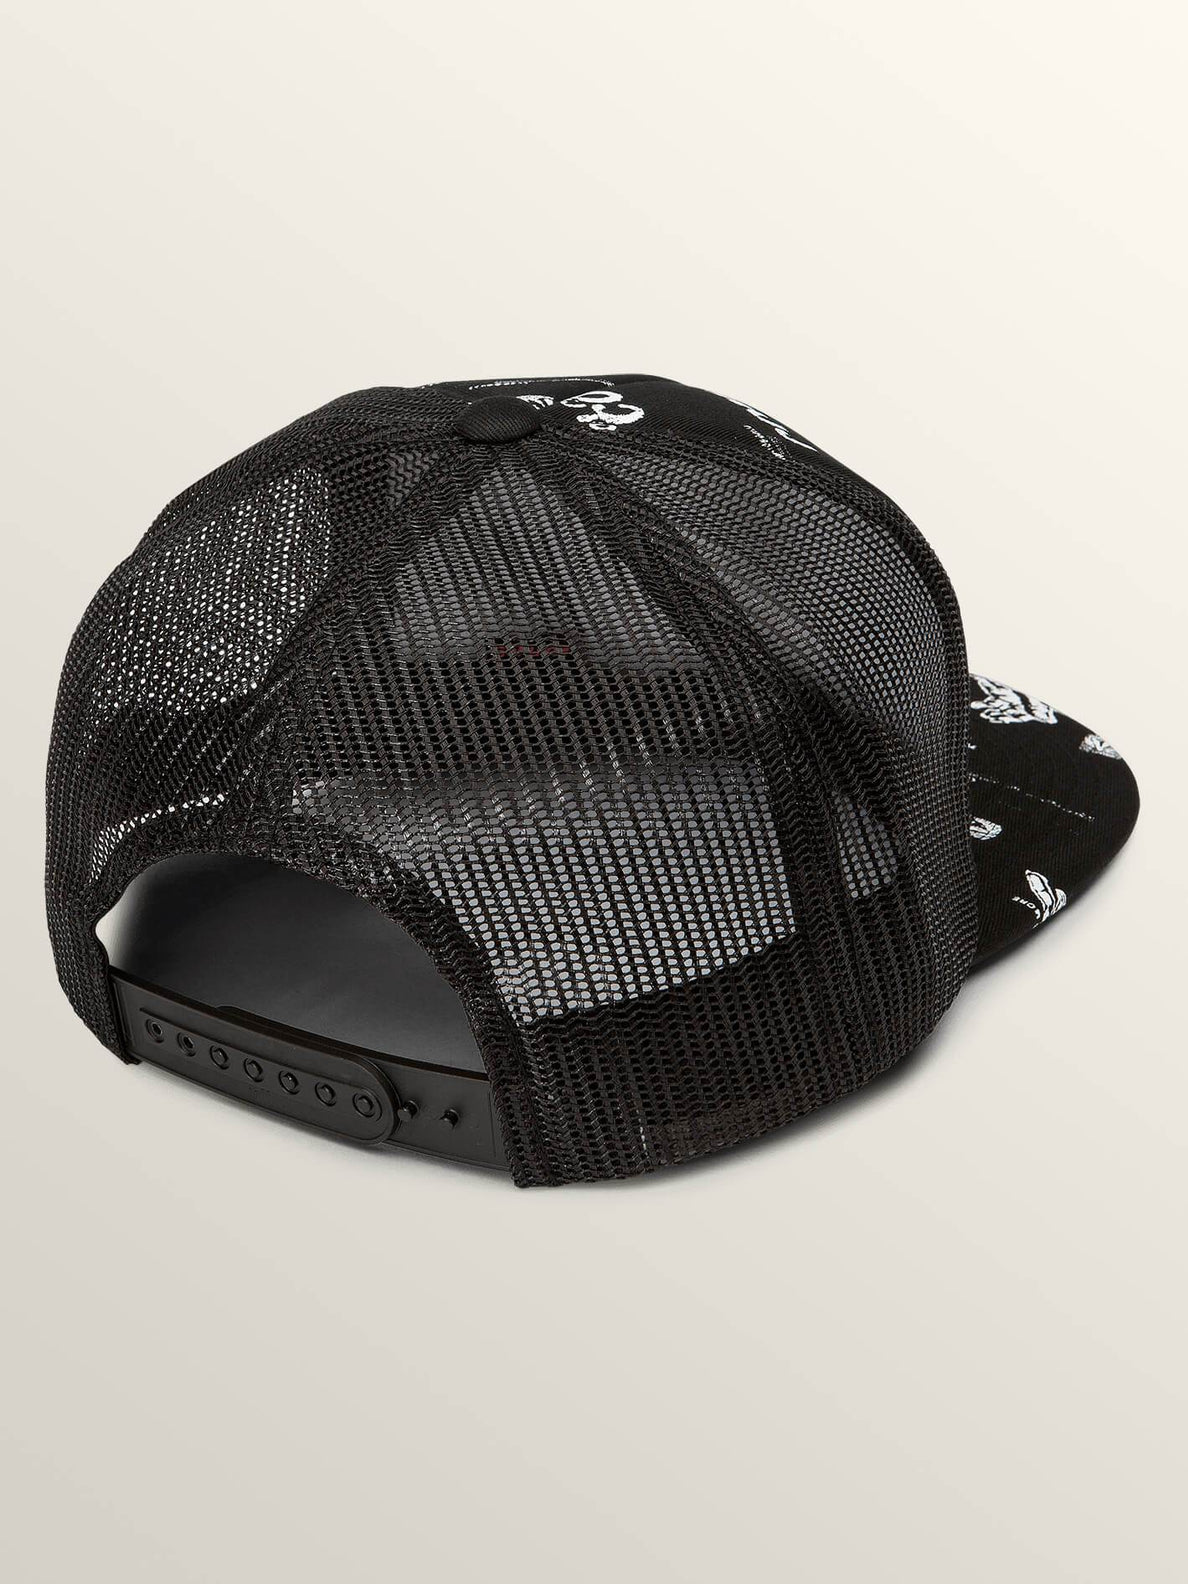 Stonar Waves Hat In Black, Back View